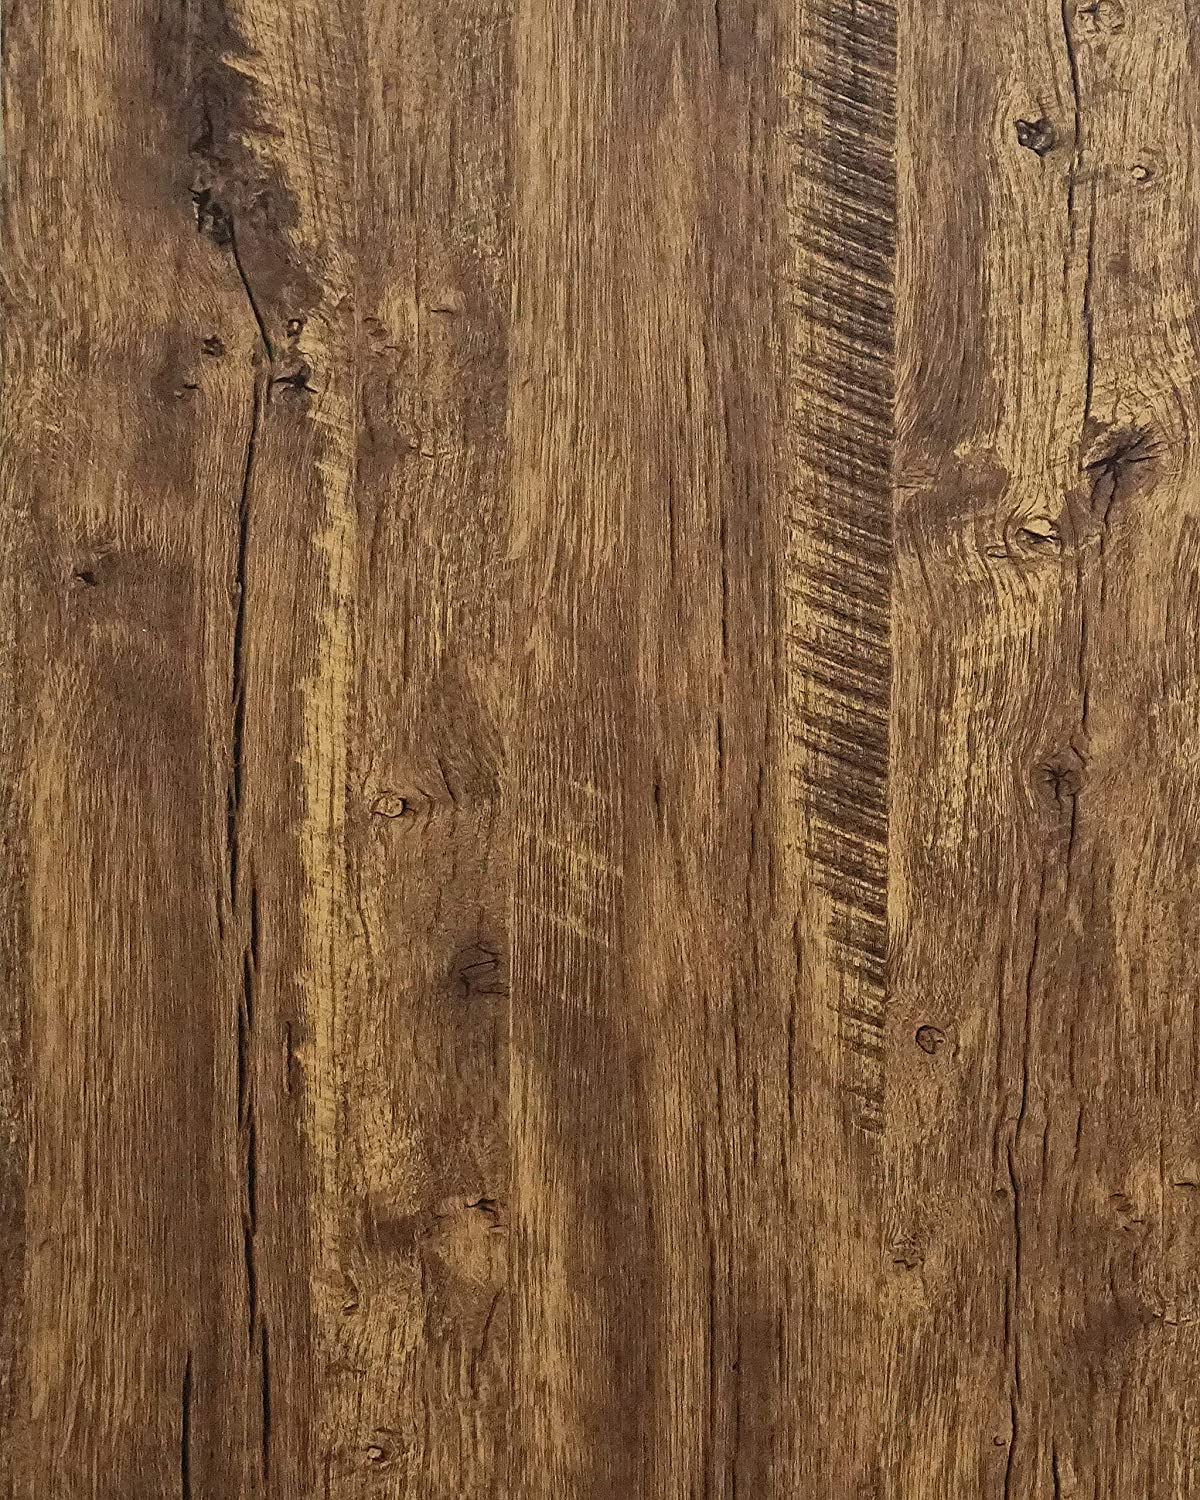 33.8Ft Distressed Wood Con-Paper Vintage Wood Wallpaper Peel and Stick Wallpaper Self Removable Wallpaper Wood Grain Con-Paper Decorative Wallpaper Wood Look Wallpaper Vinyl Roll Shelf Paper